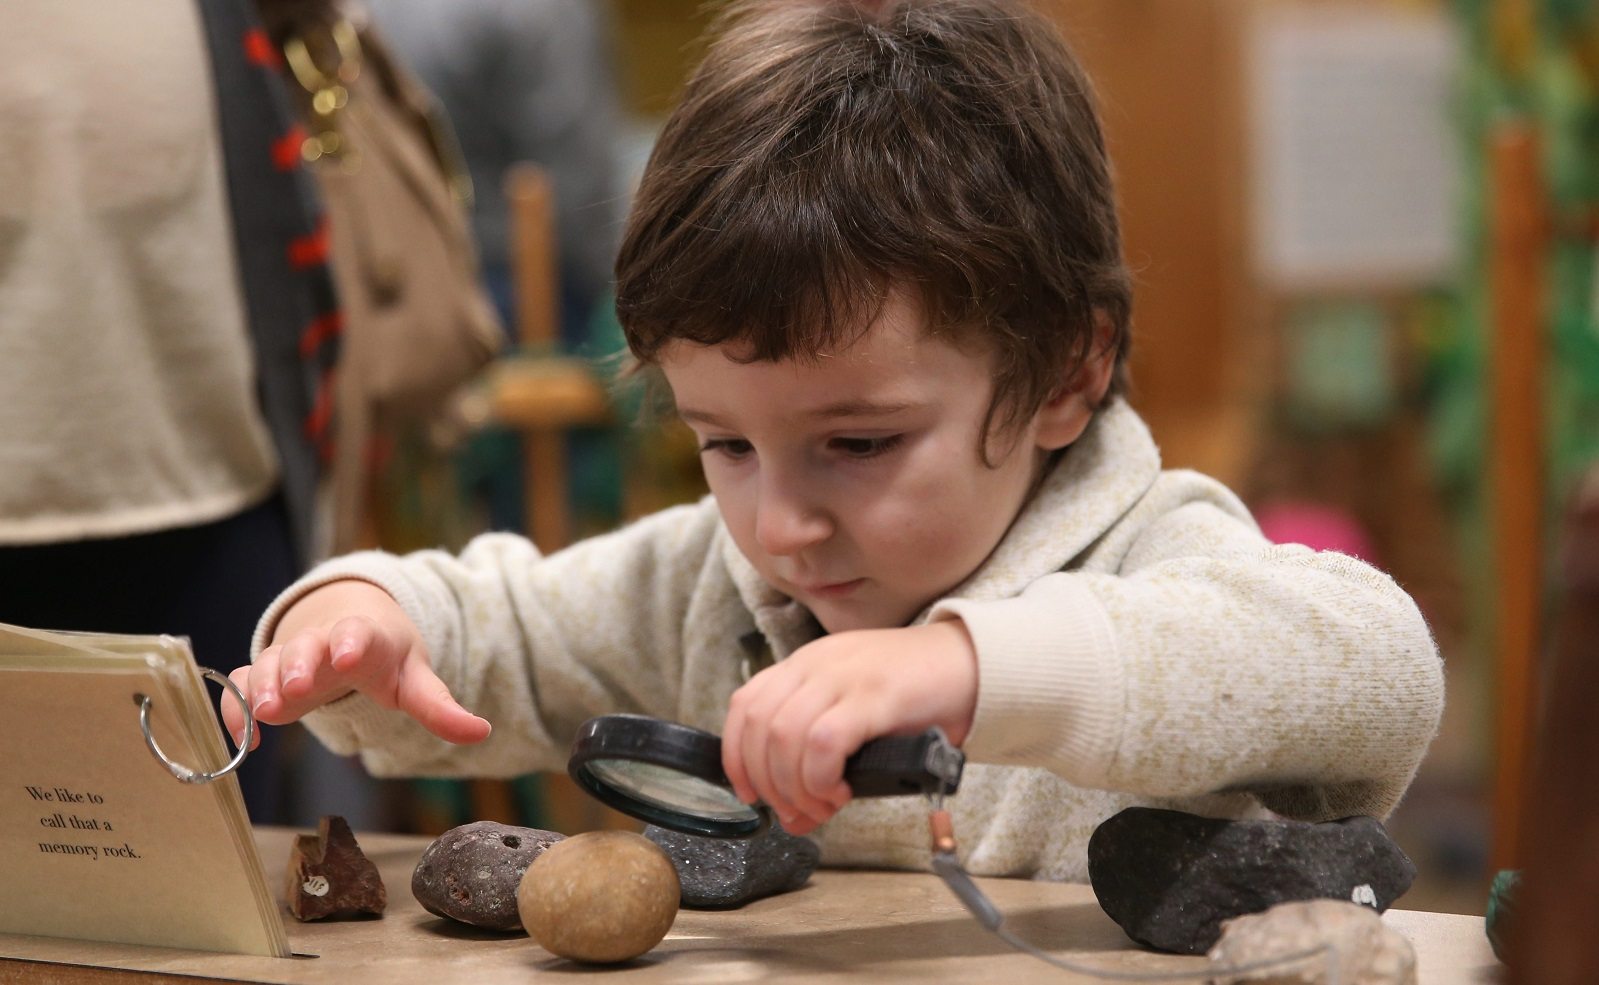 Activities at Explore & More in East Aurora make the list of kid-friendly events. (Sharon Cantillon/Buffalo News file photo)